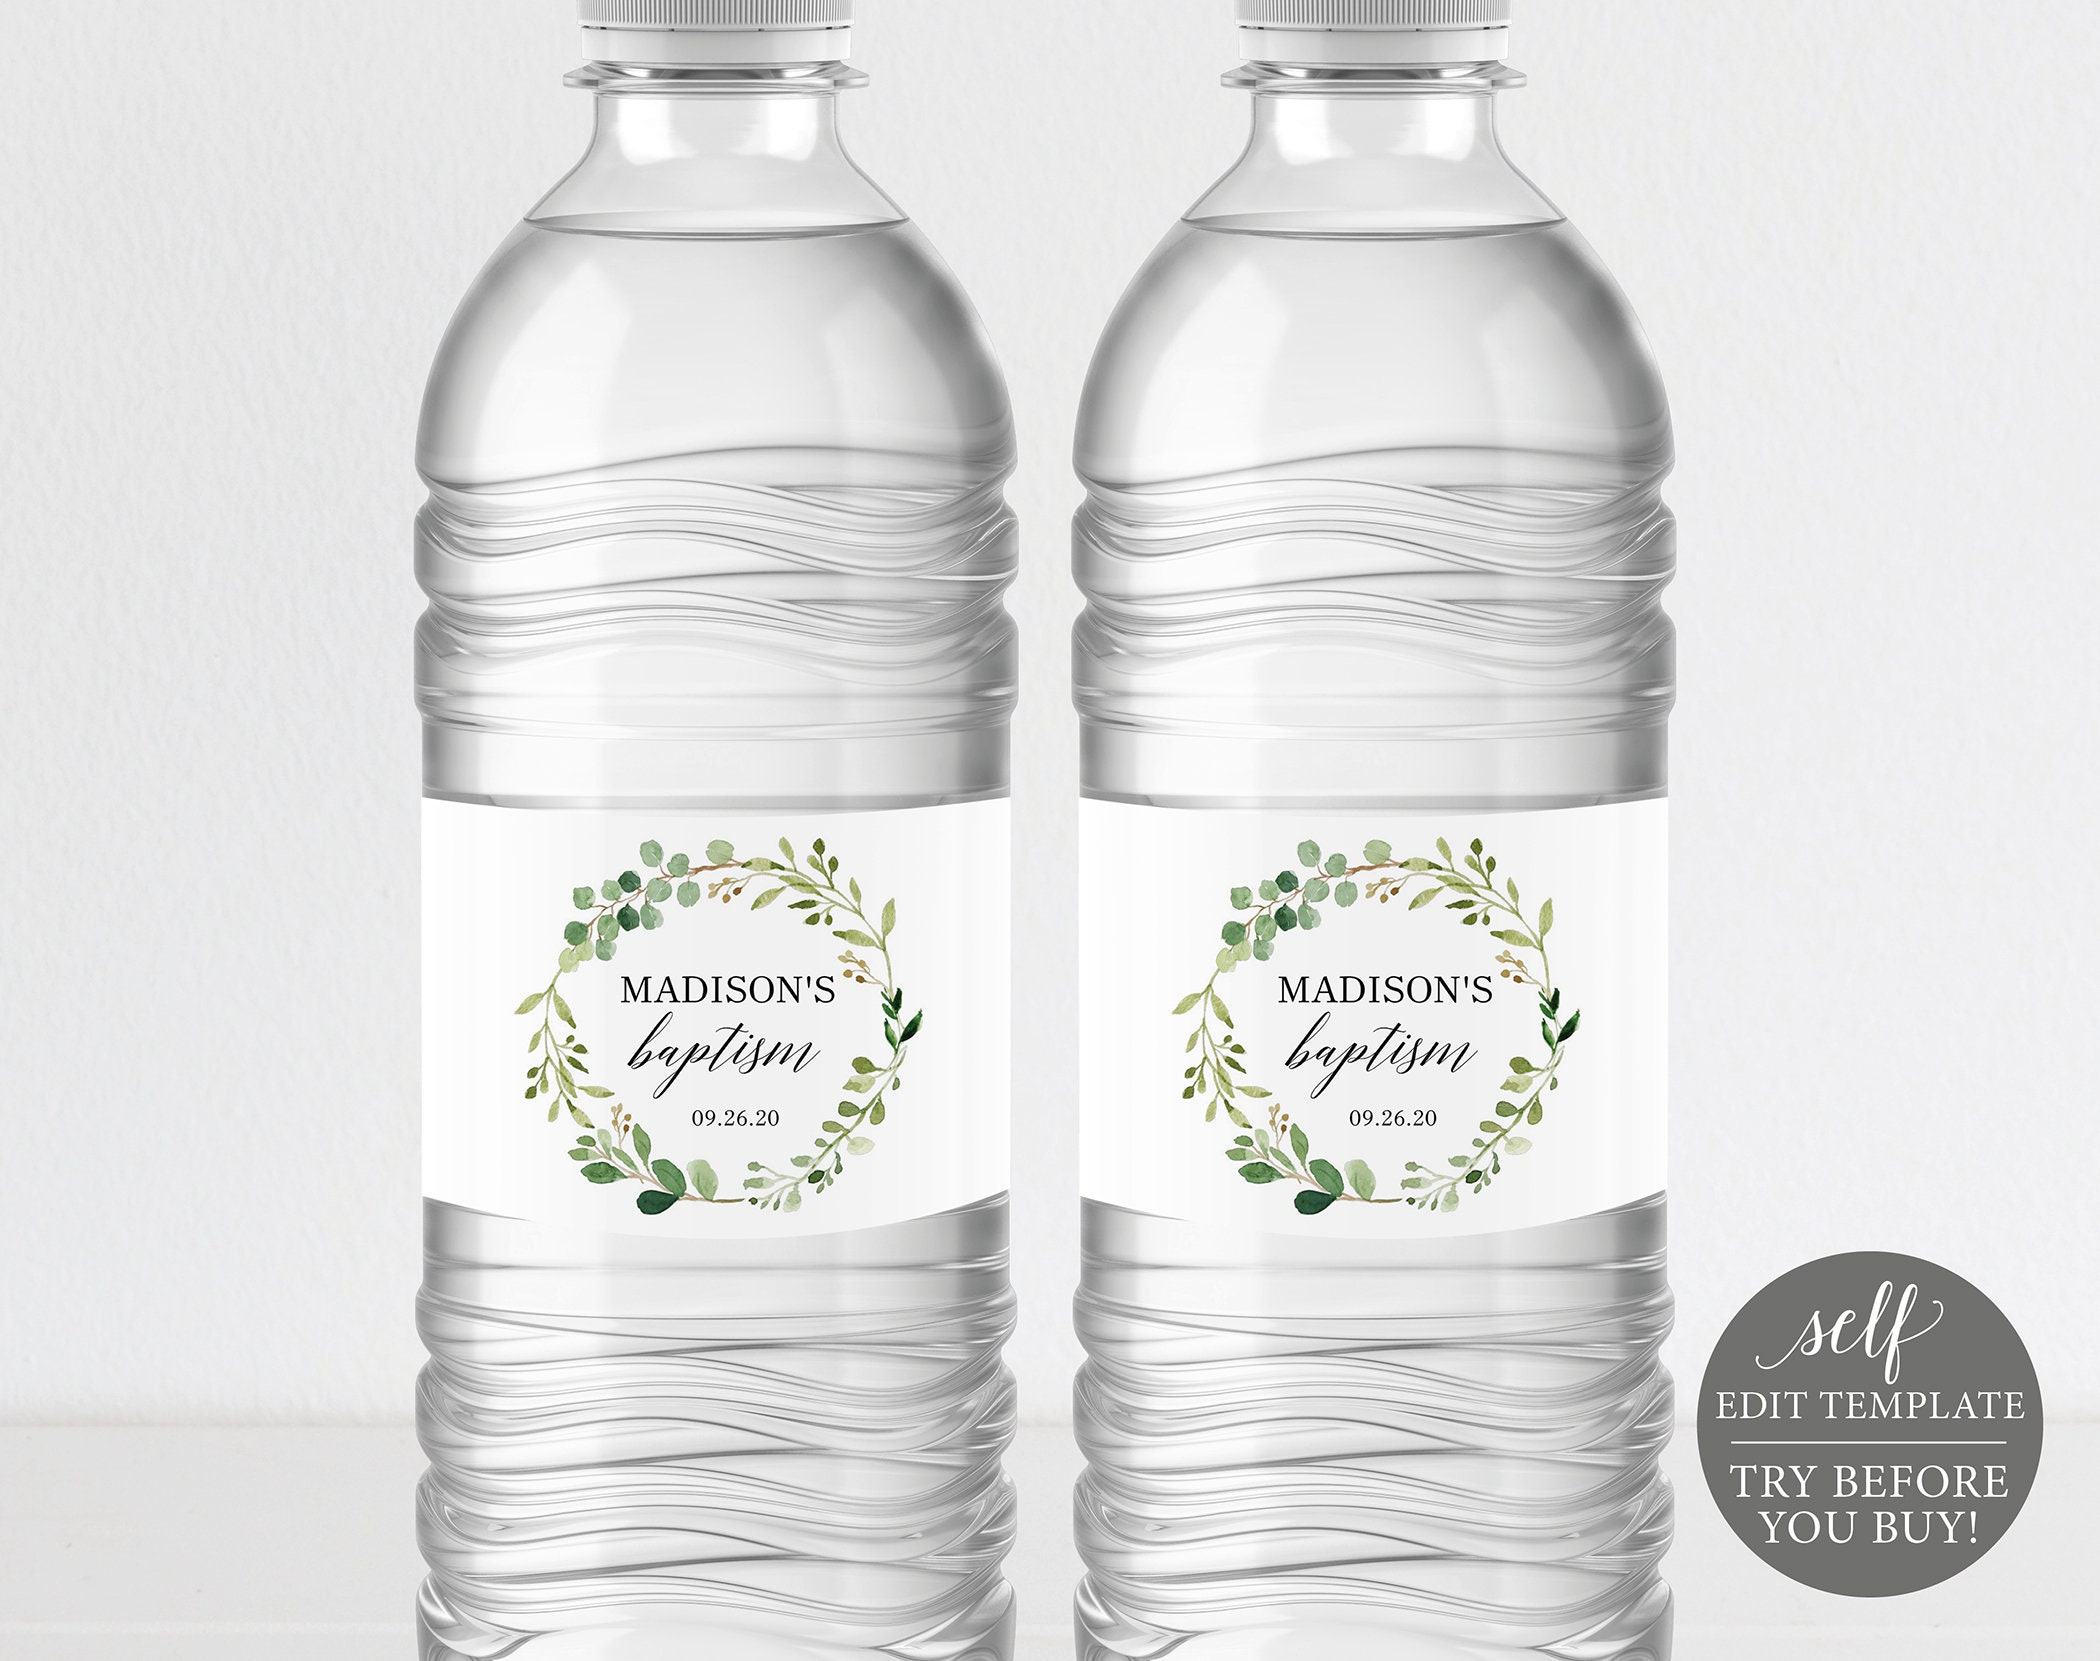 Baptism Water Bottle Label Template Try Before You Buy Editable Label Printable Instant Download Greenery